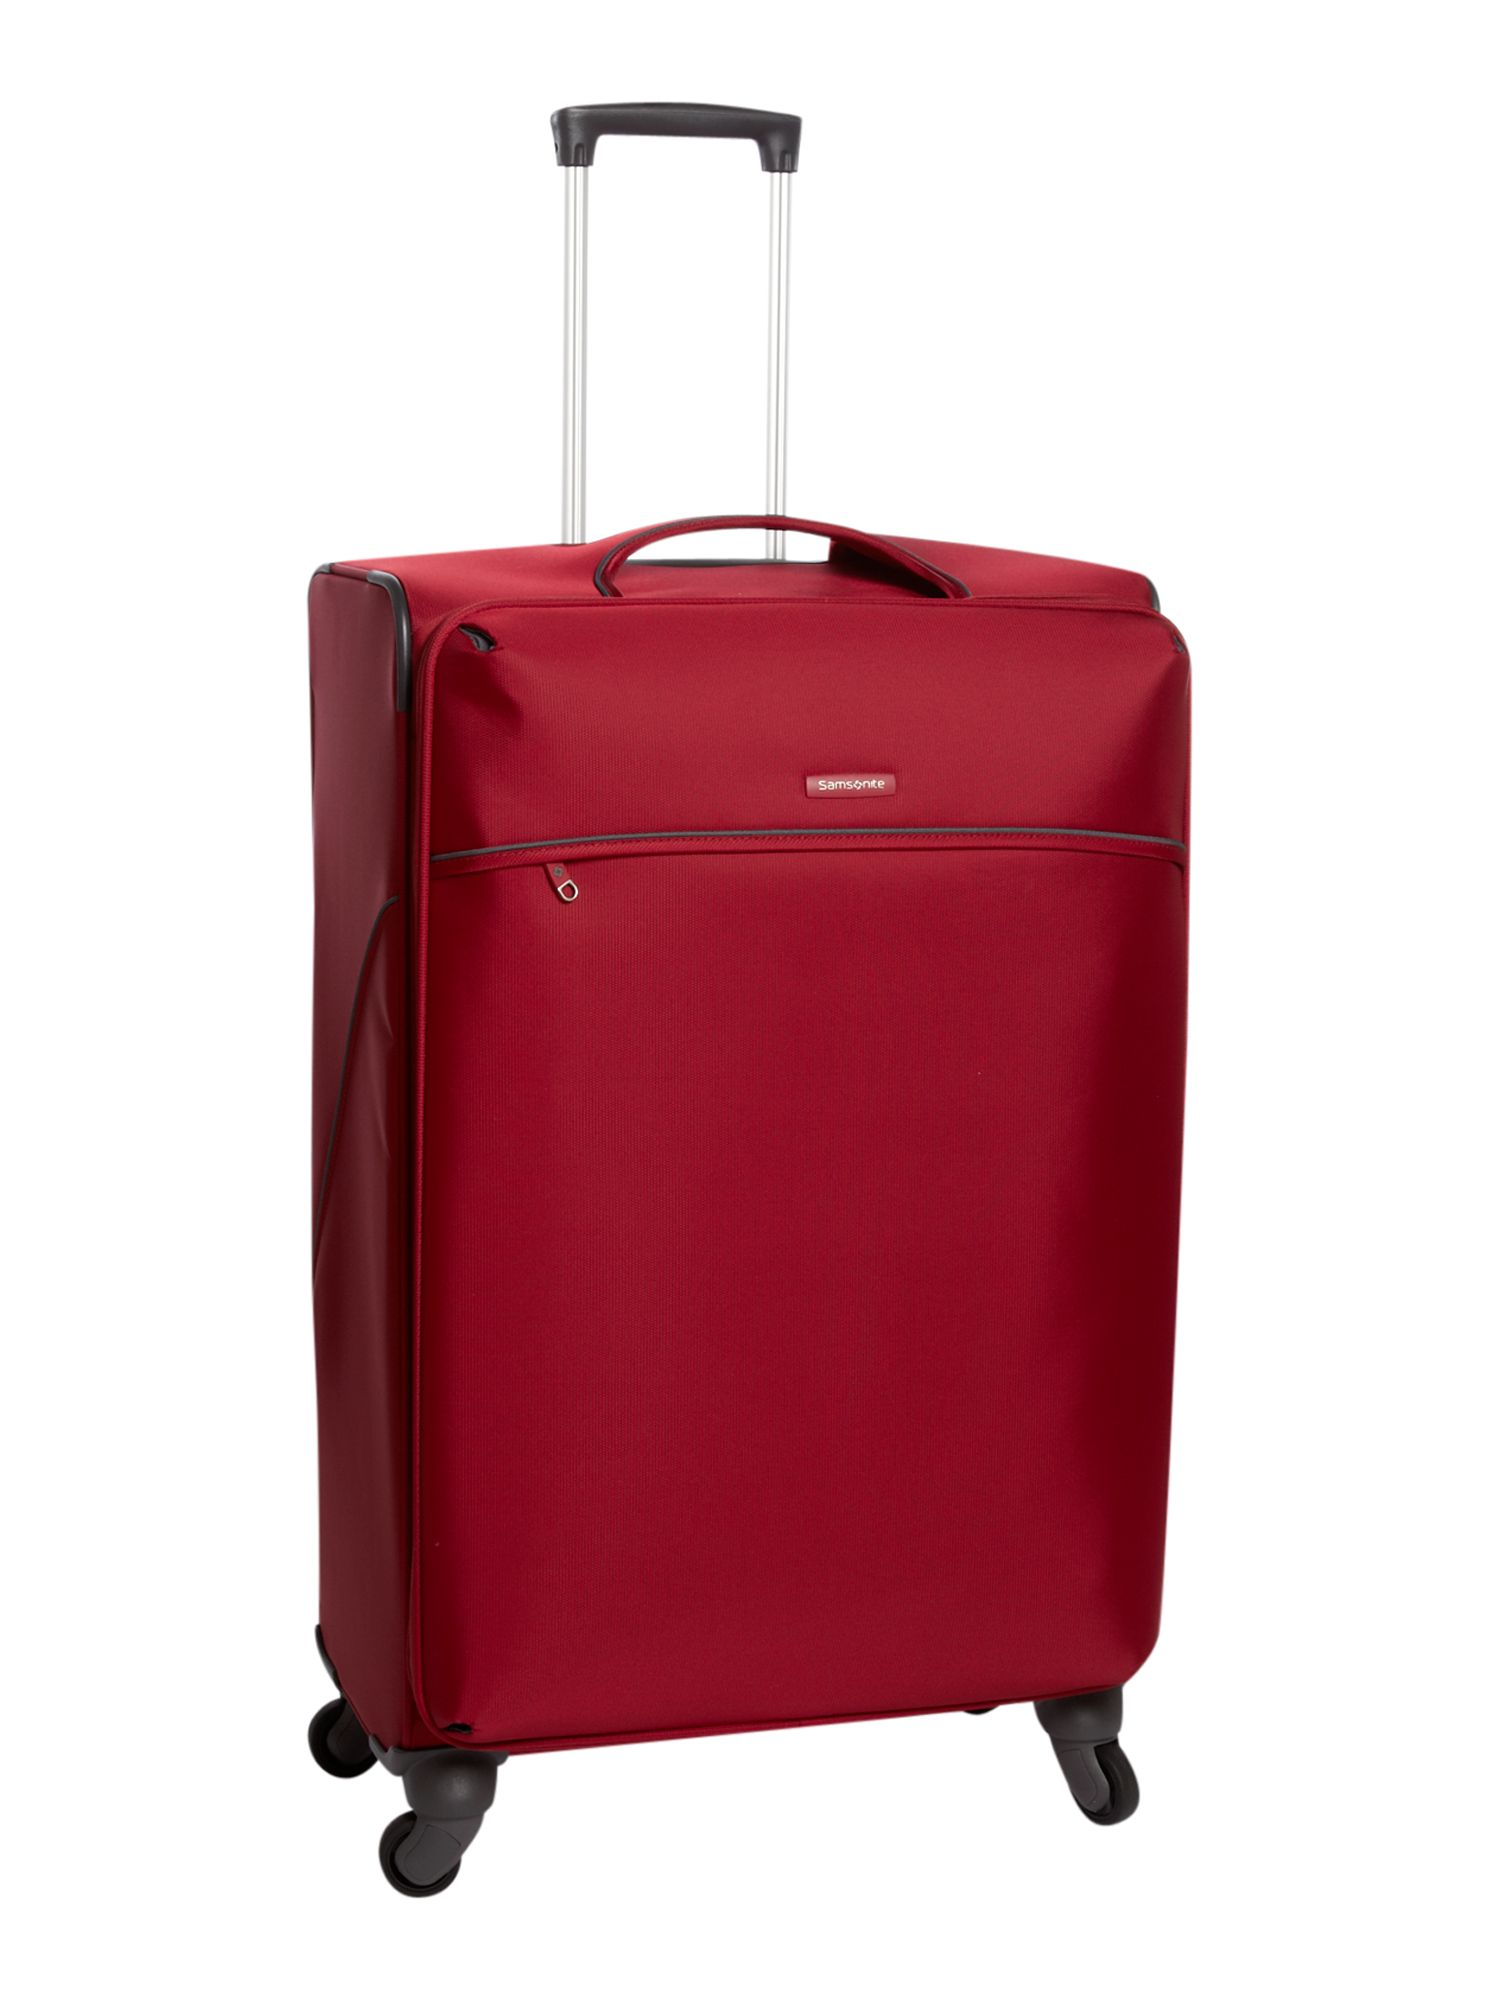 Blite Fresh Raspberry 79cm 4 Wheel Case